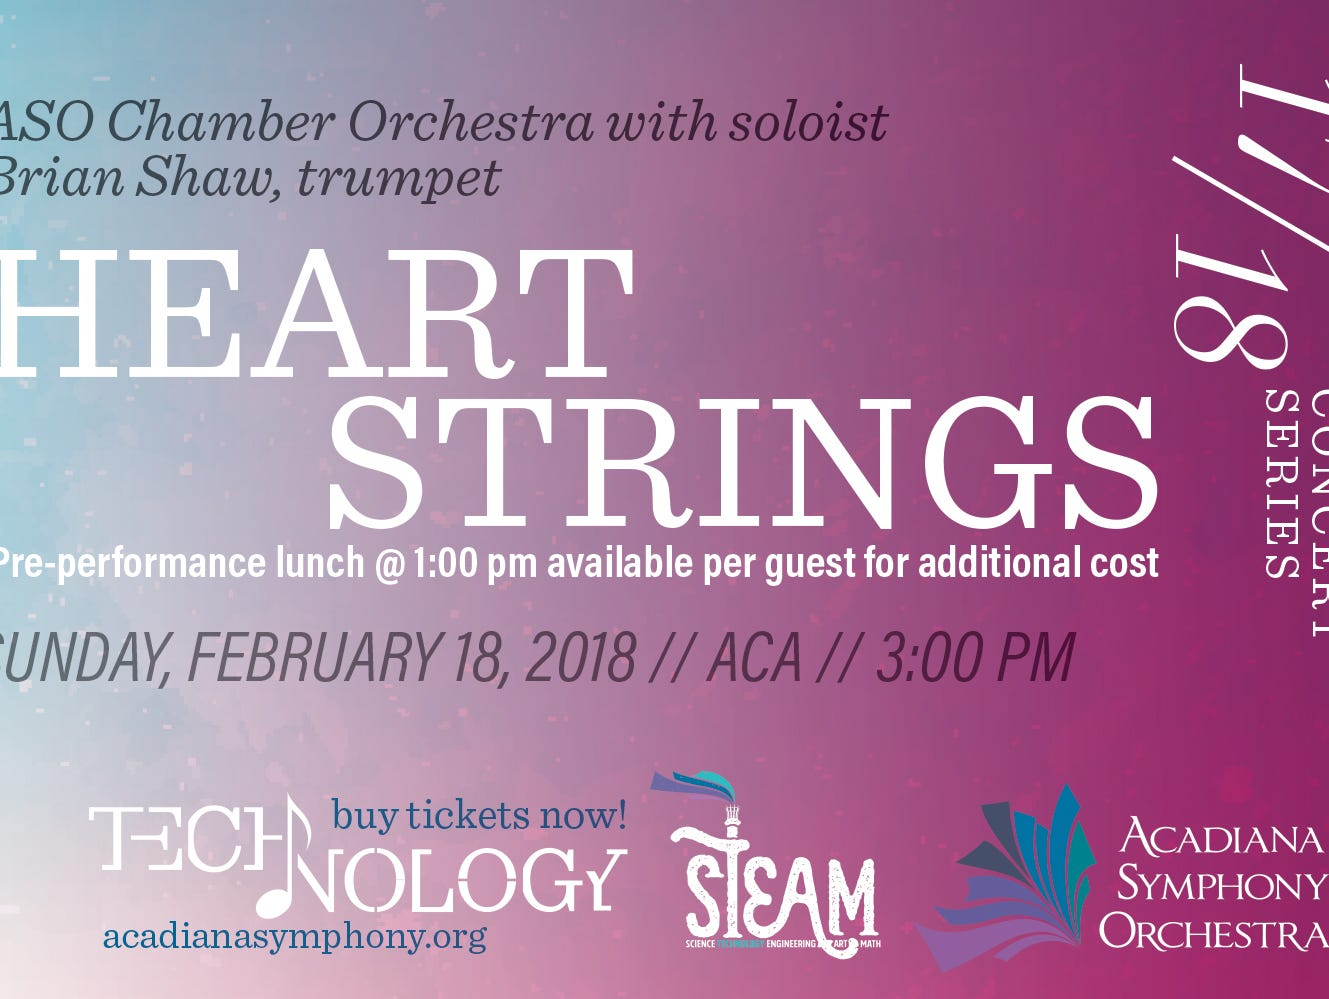 Enter to win tickets to the sold out 3 p.m. show on Feb. 18th. Enter to win by 2/14!